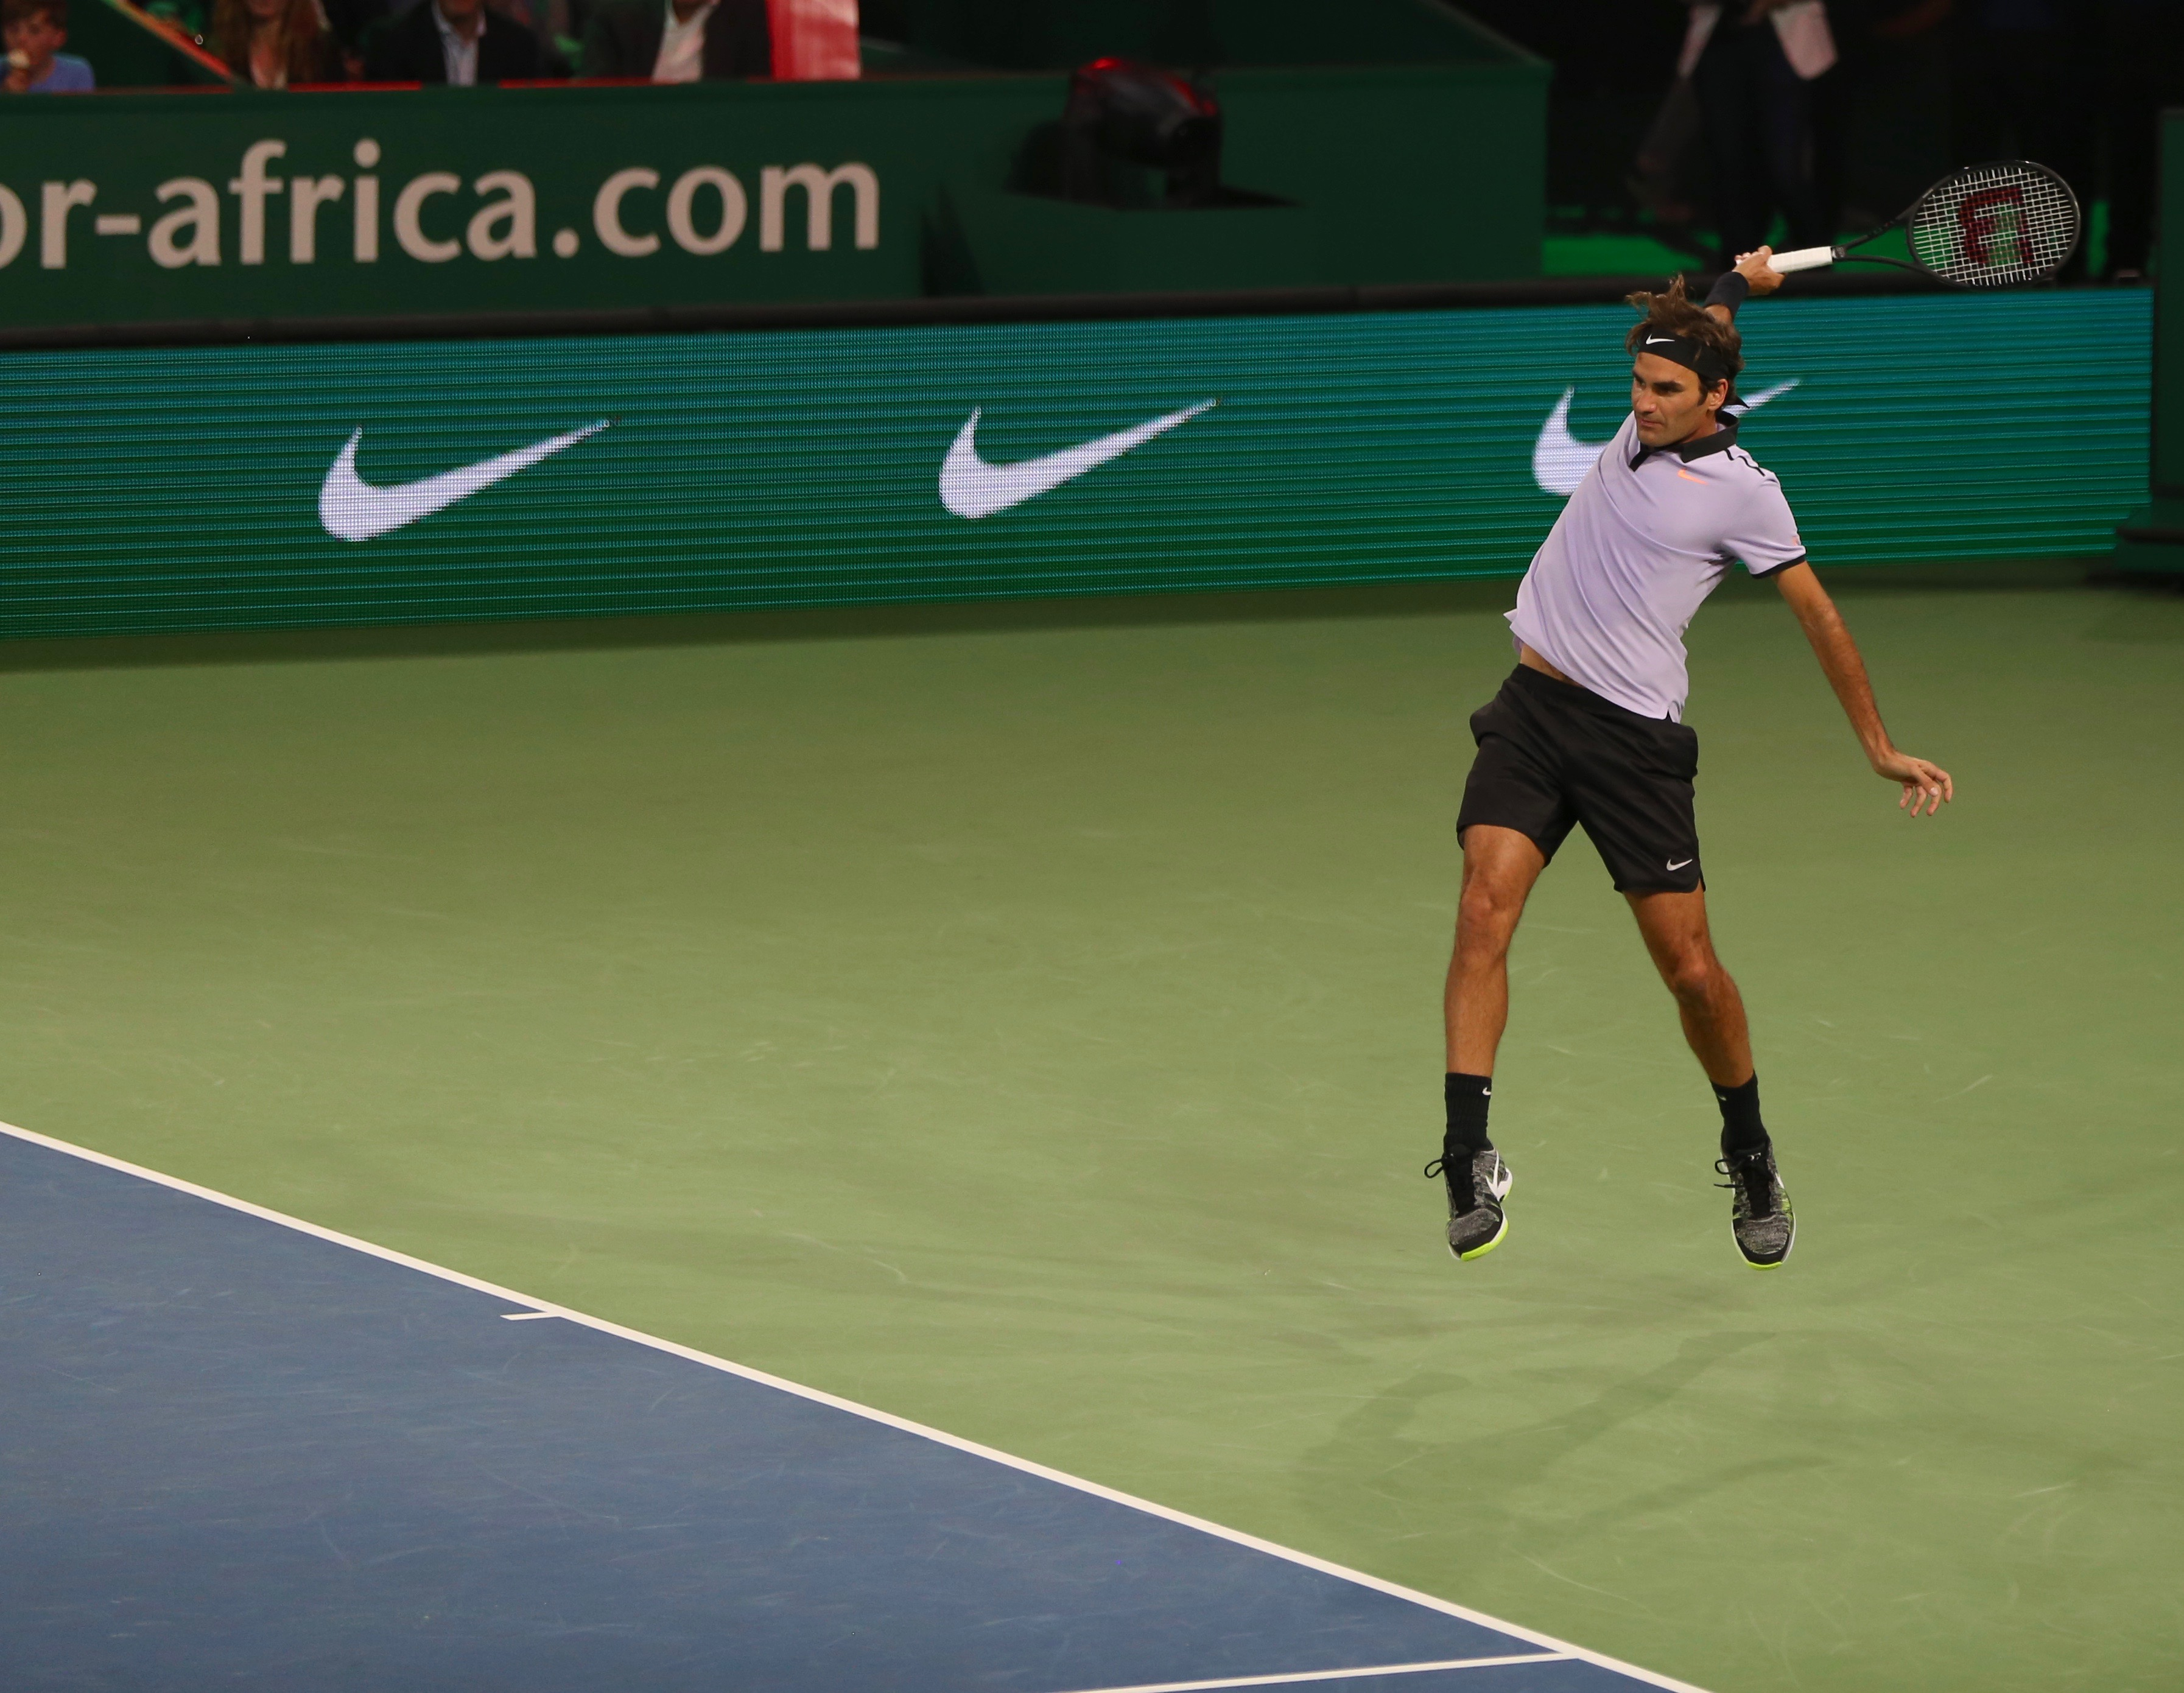 9fa22ef39 Federer Tops Murray in Match For Africa 3 Exhibition • FedFan